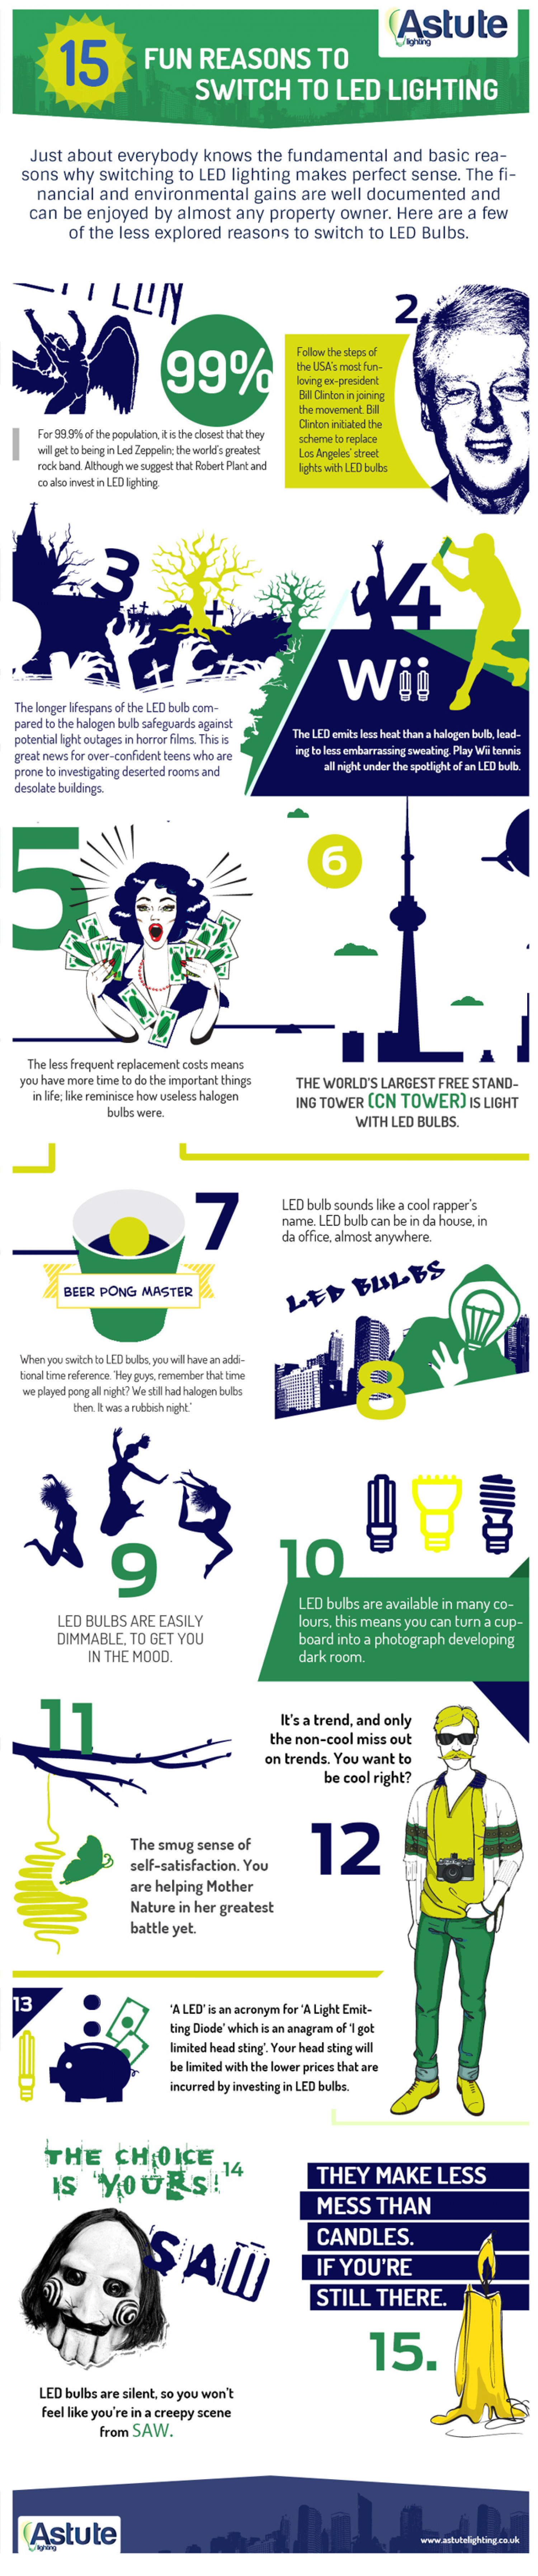 15 Benefits of Switching to LED Lighting Infographic